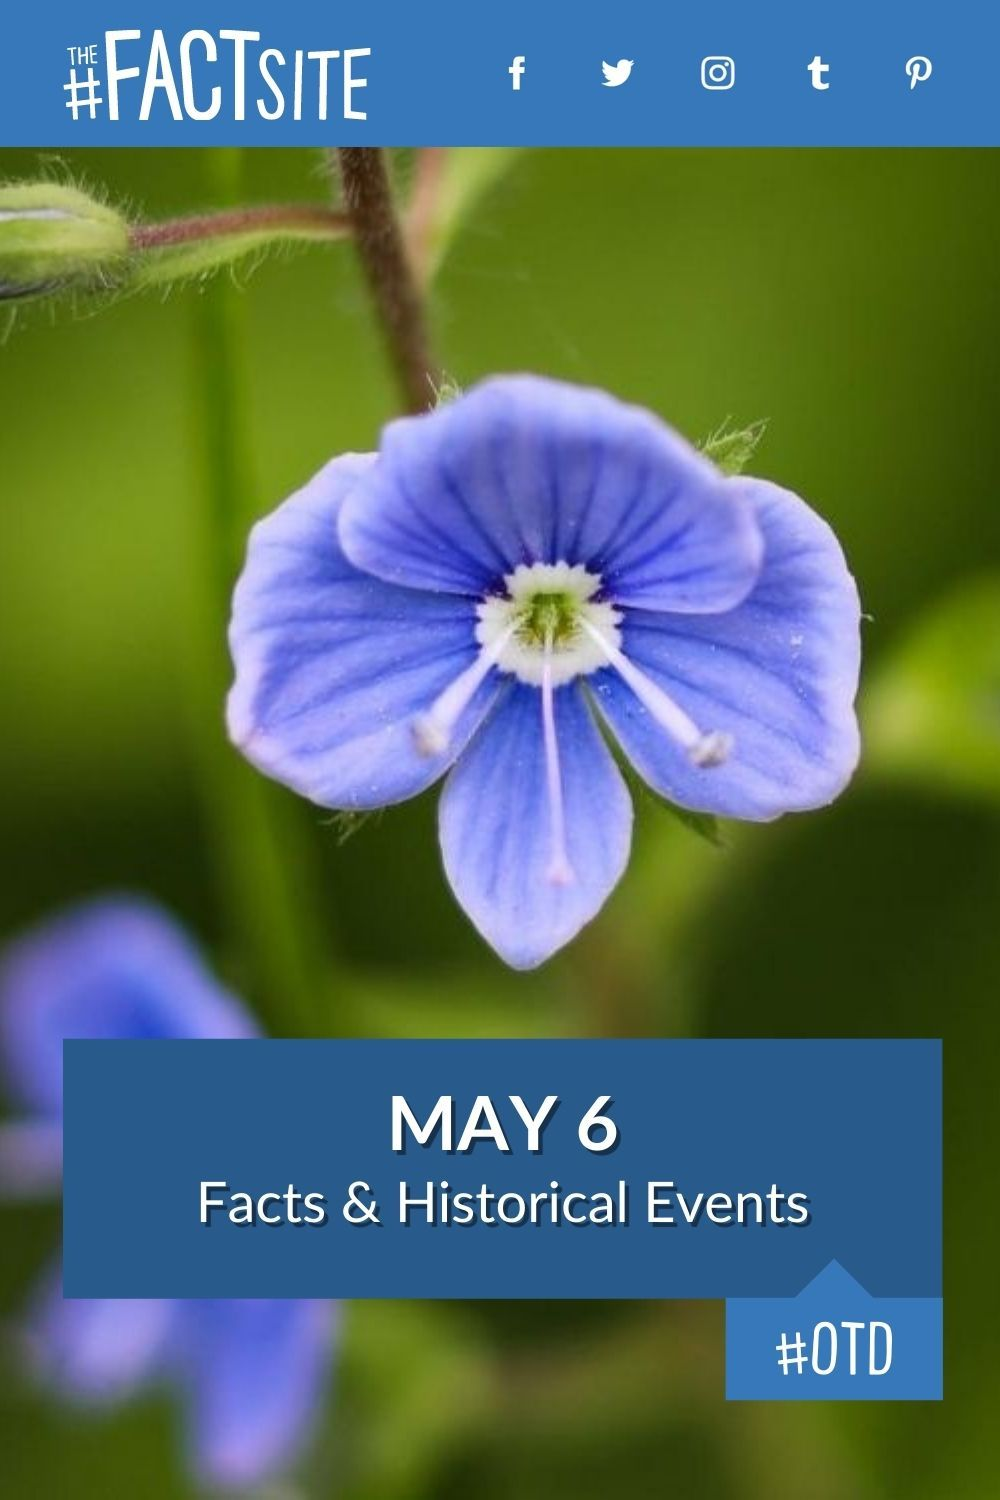 Facts & Historic Events That Happened on May 6